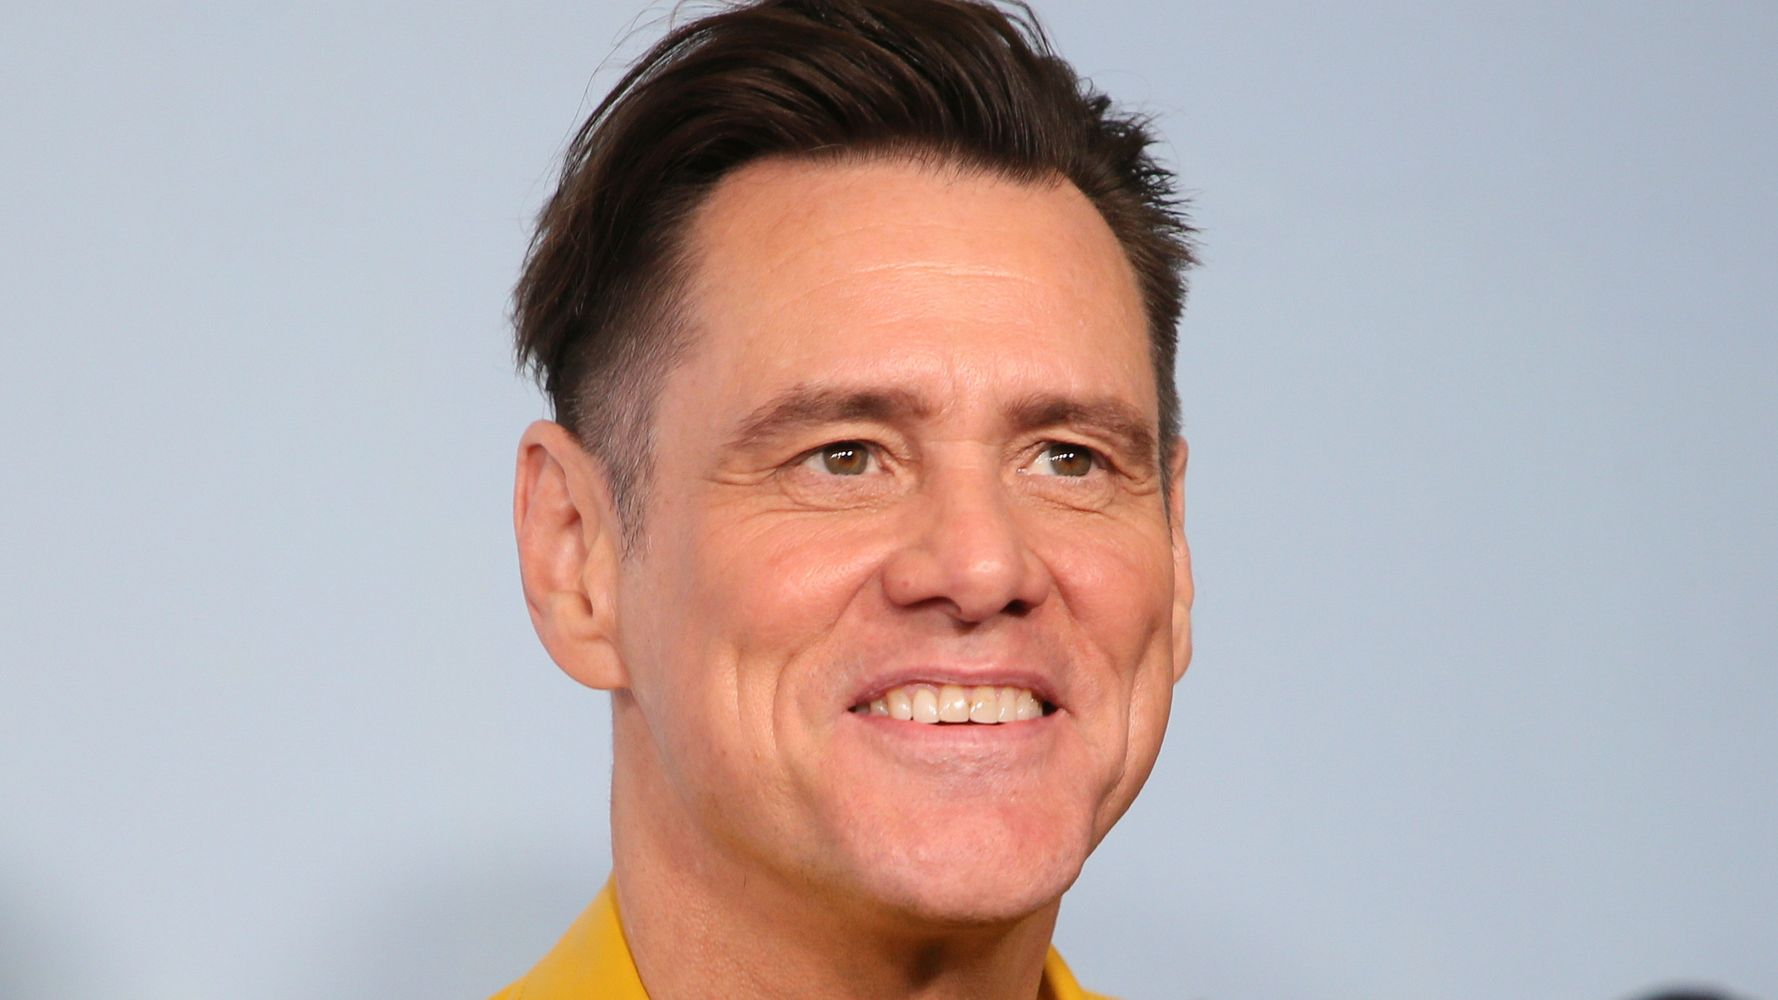 Jim Carrey Rips Fox News, Gives Damning New Meaning To 'MAGA' In Latest Art